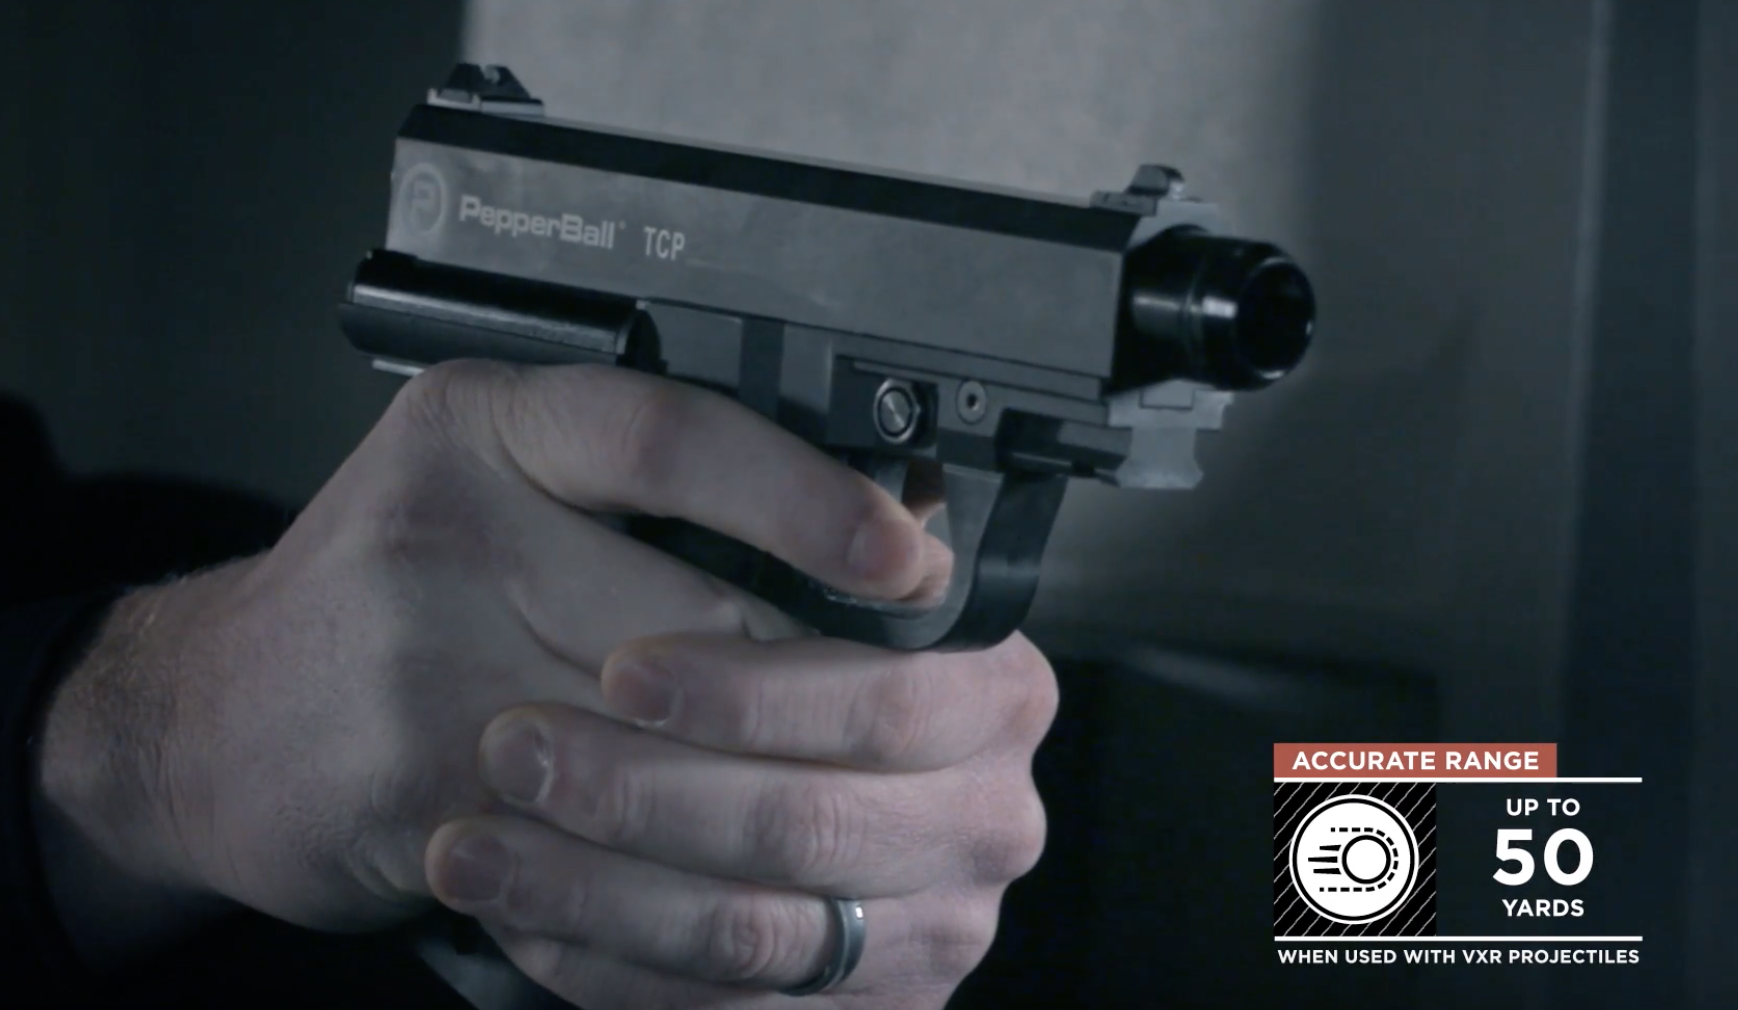 Pepperball S Tcp Compact Launcher Now Available To